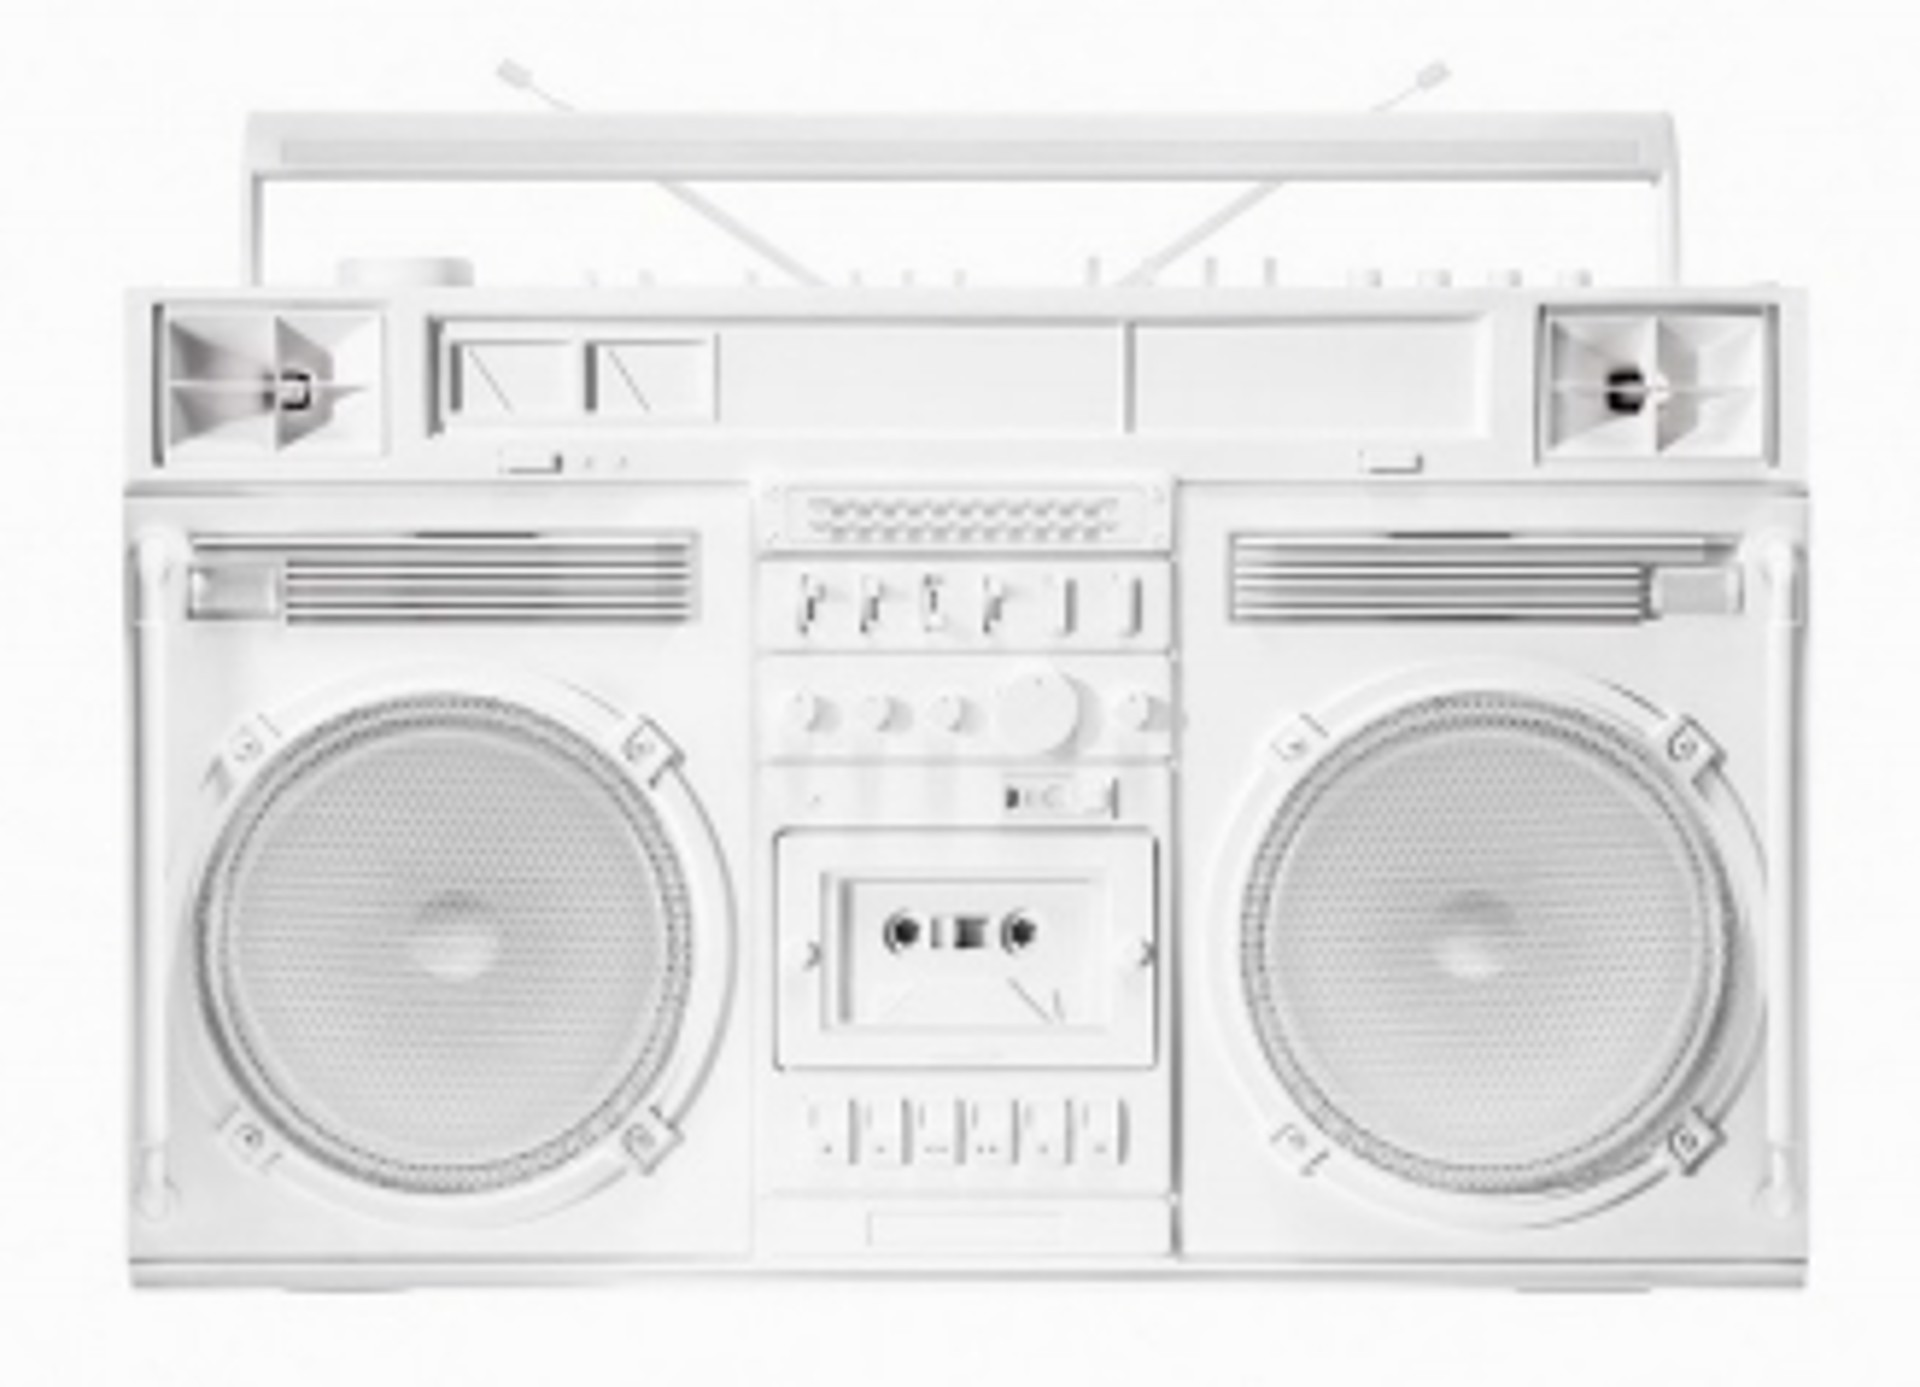 Boombox Sculpture series Size D, White by Lyle Owerko